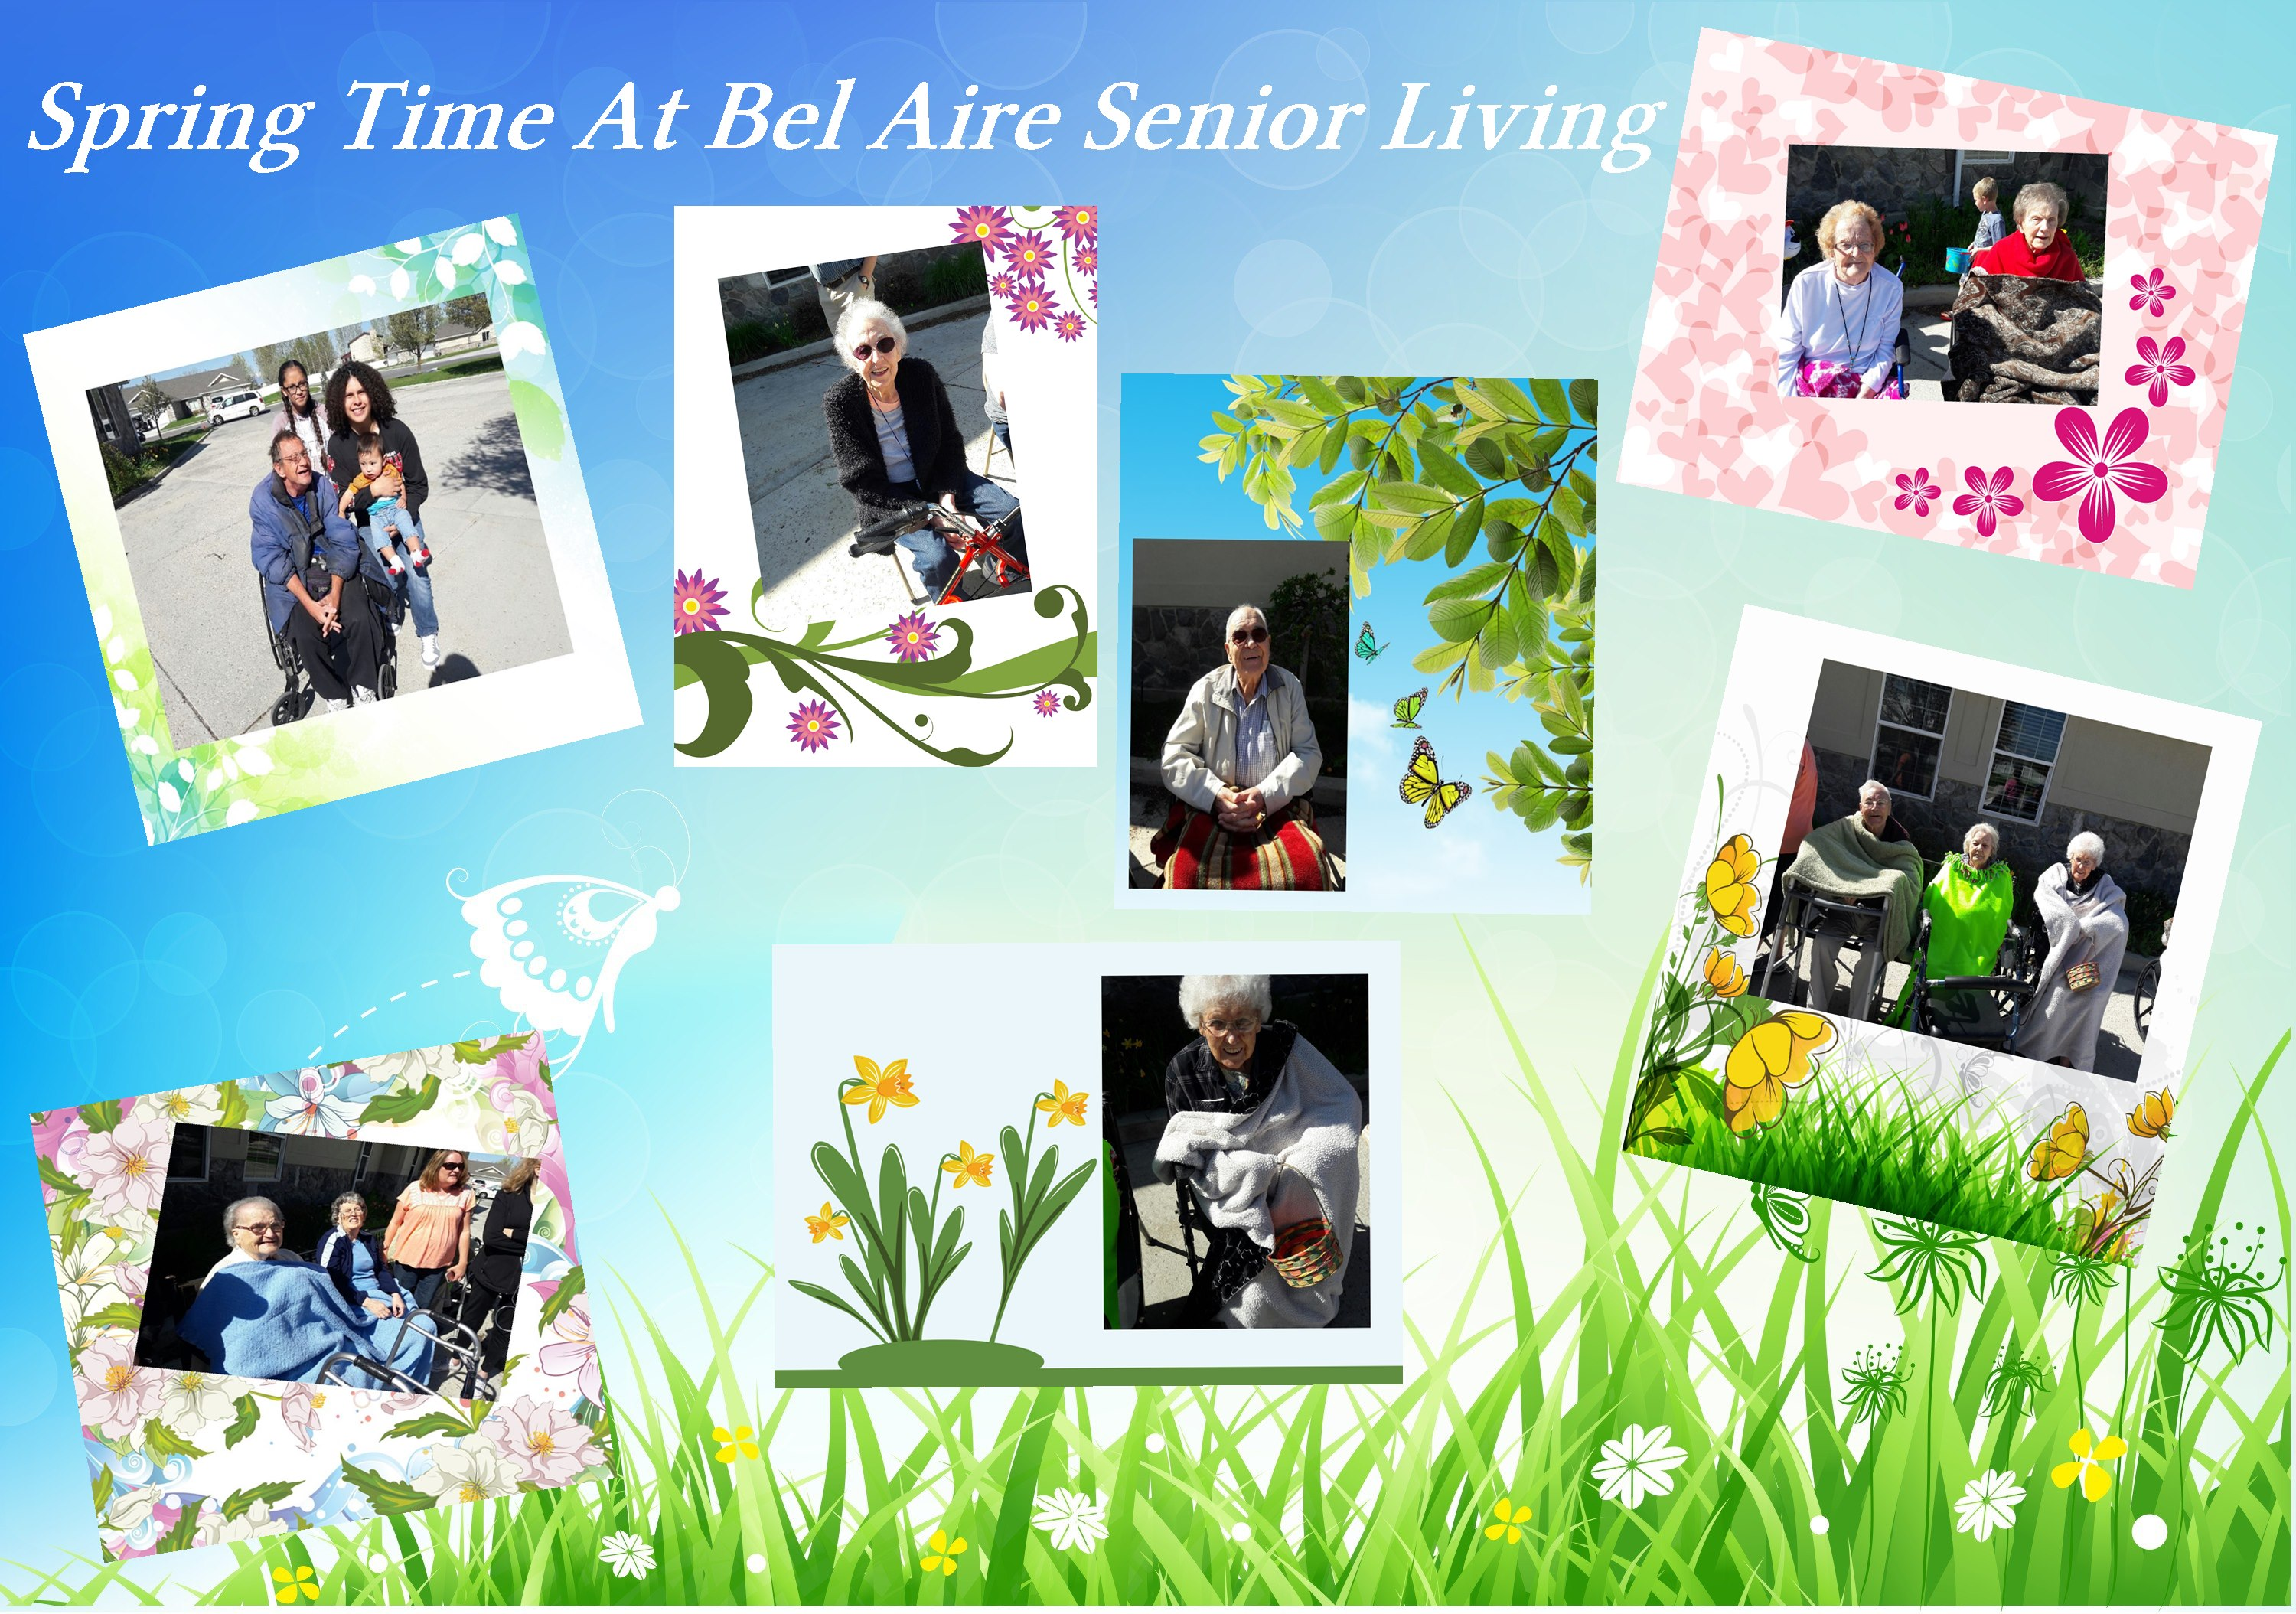 Spring Time At Bel Aire